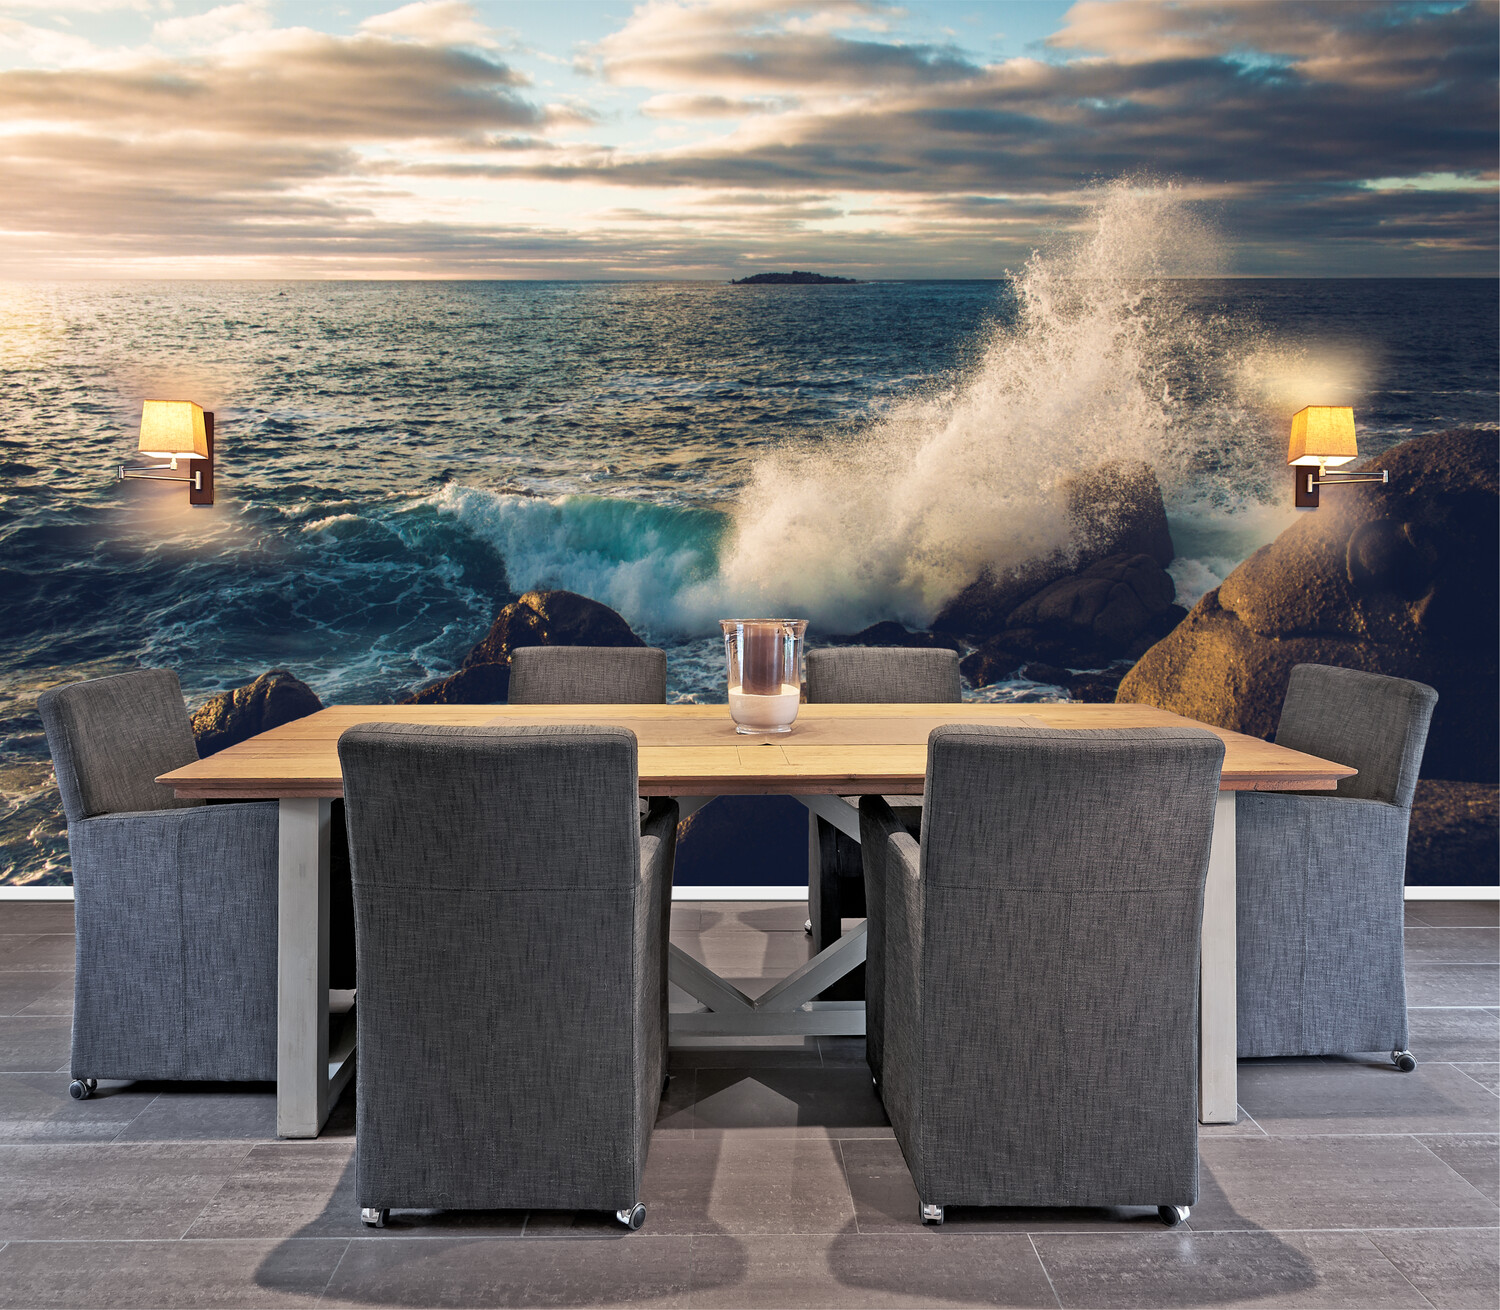 ROCKY WAVES | Vinyl Wall Mural for Any Room | Removable Vinyl Wallpaper